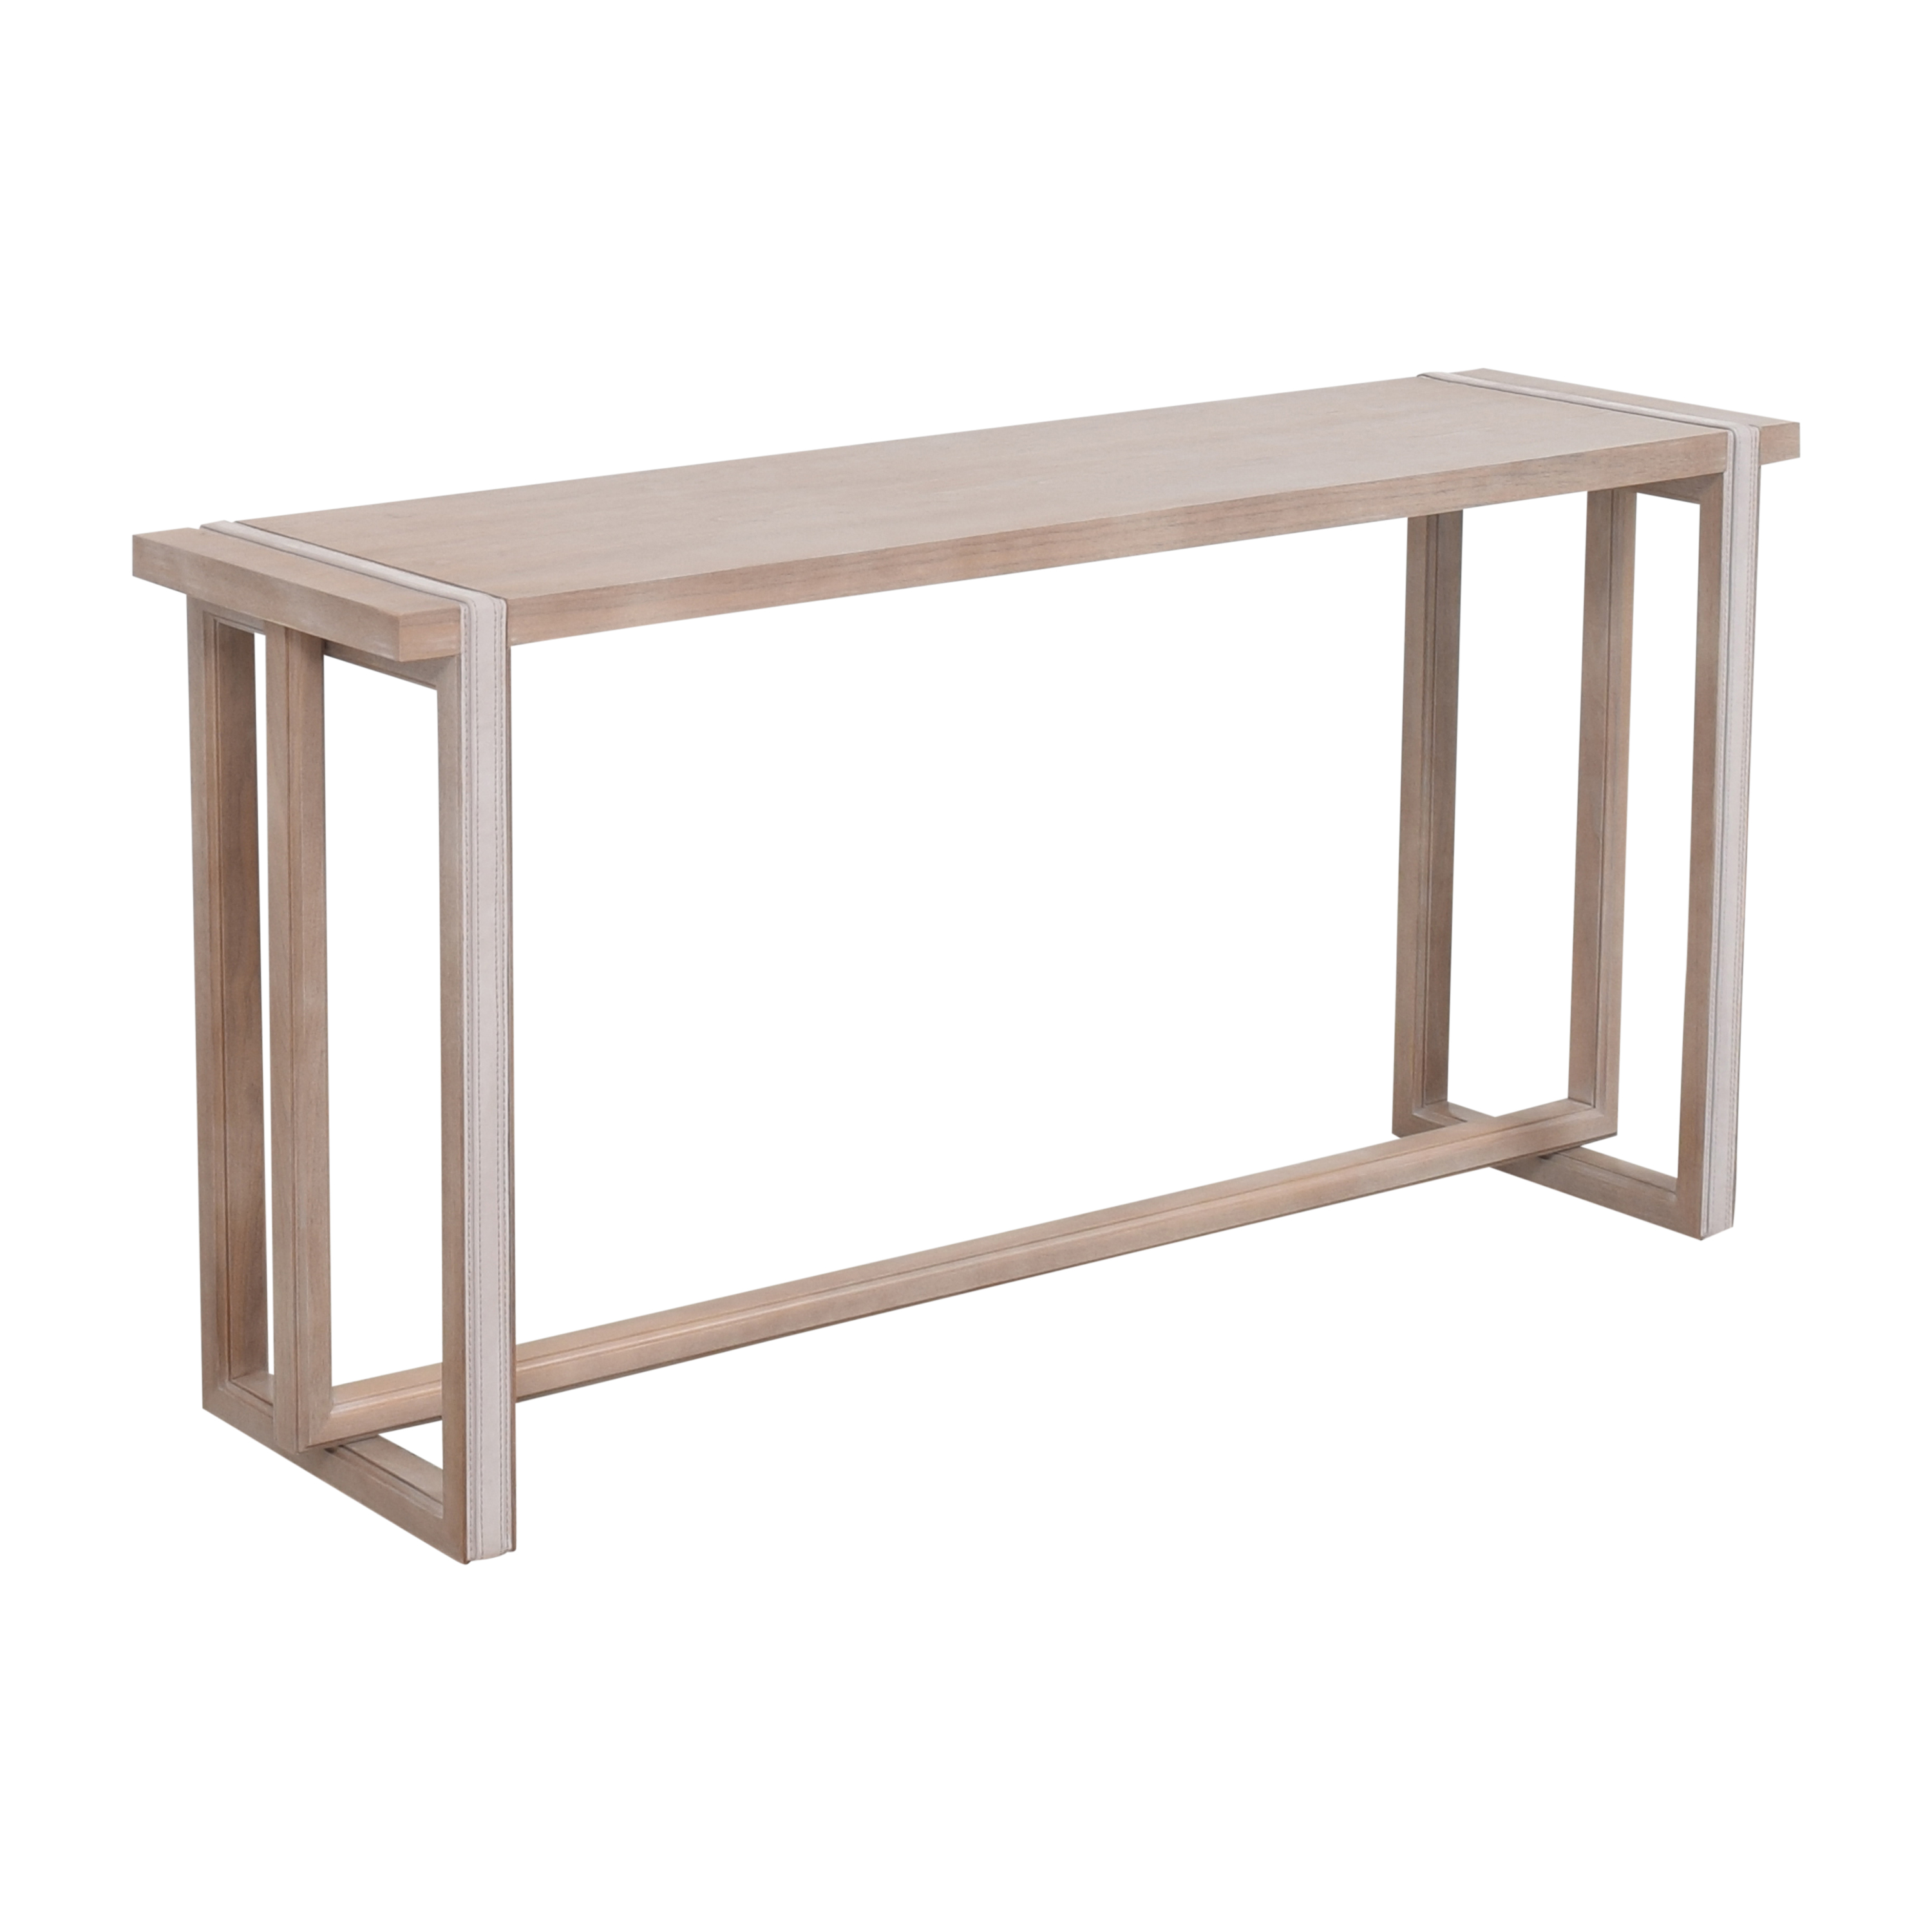 The New Traditionalists The New Traditionalists Console Table with Belt Detail ma